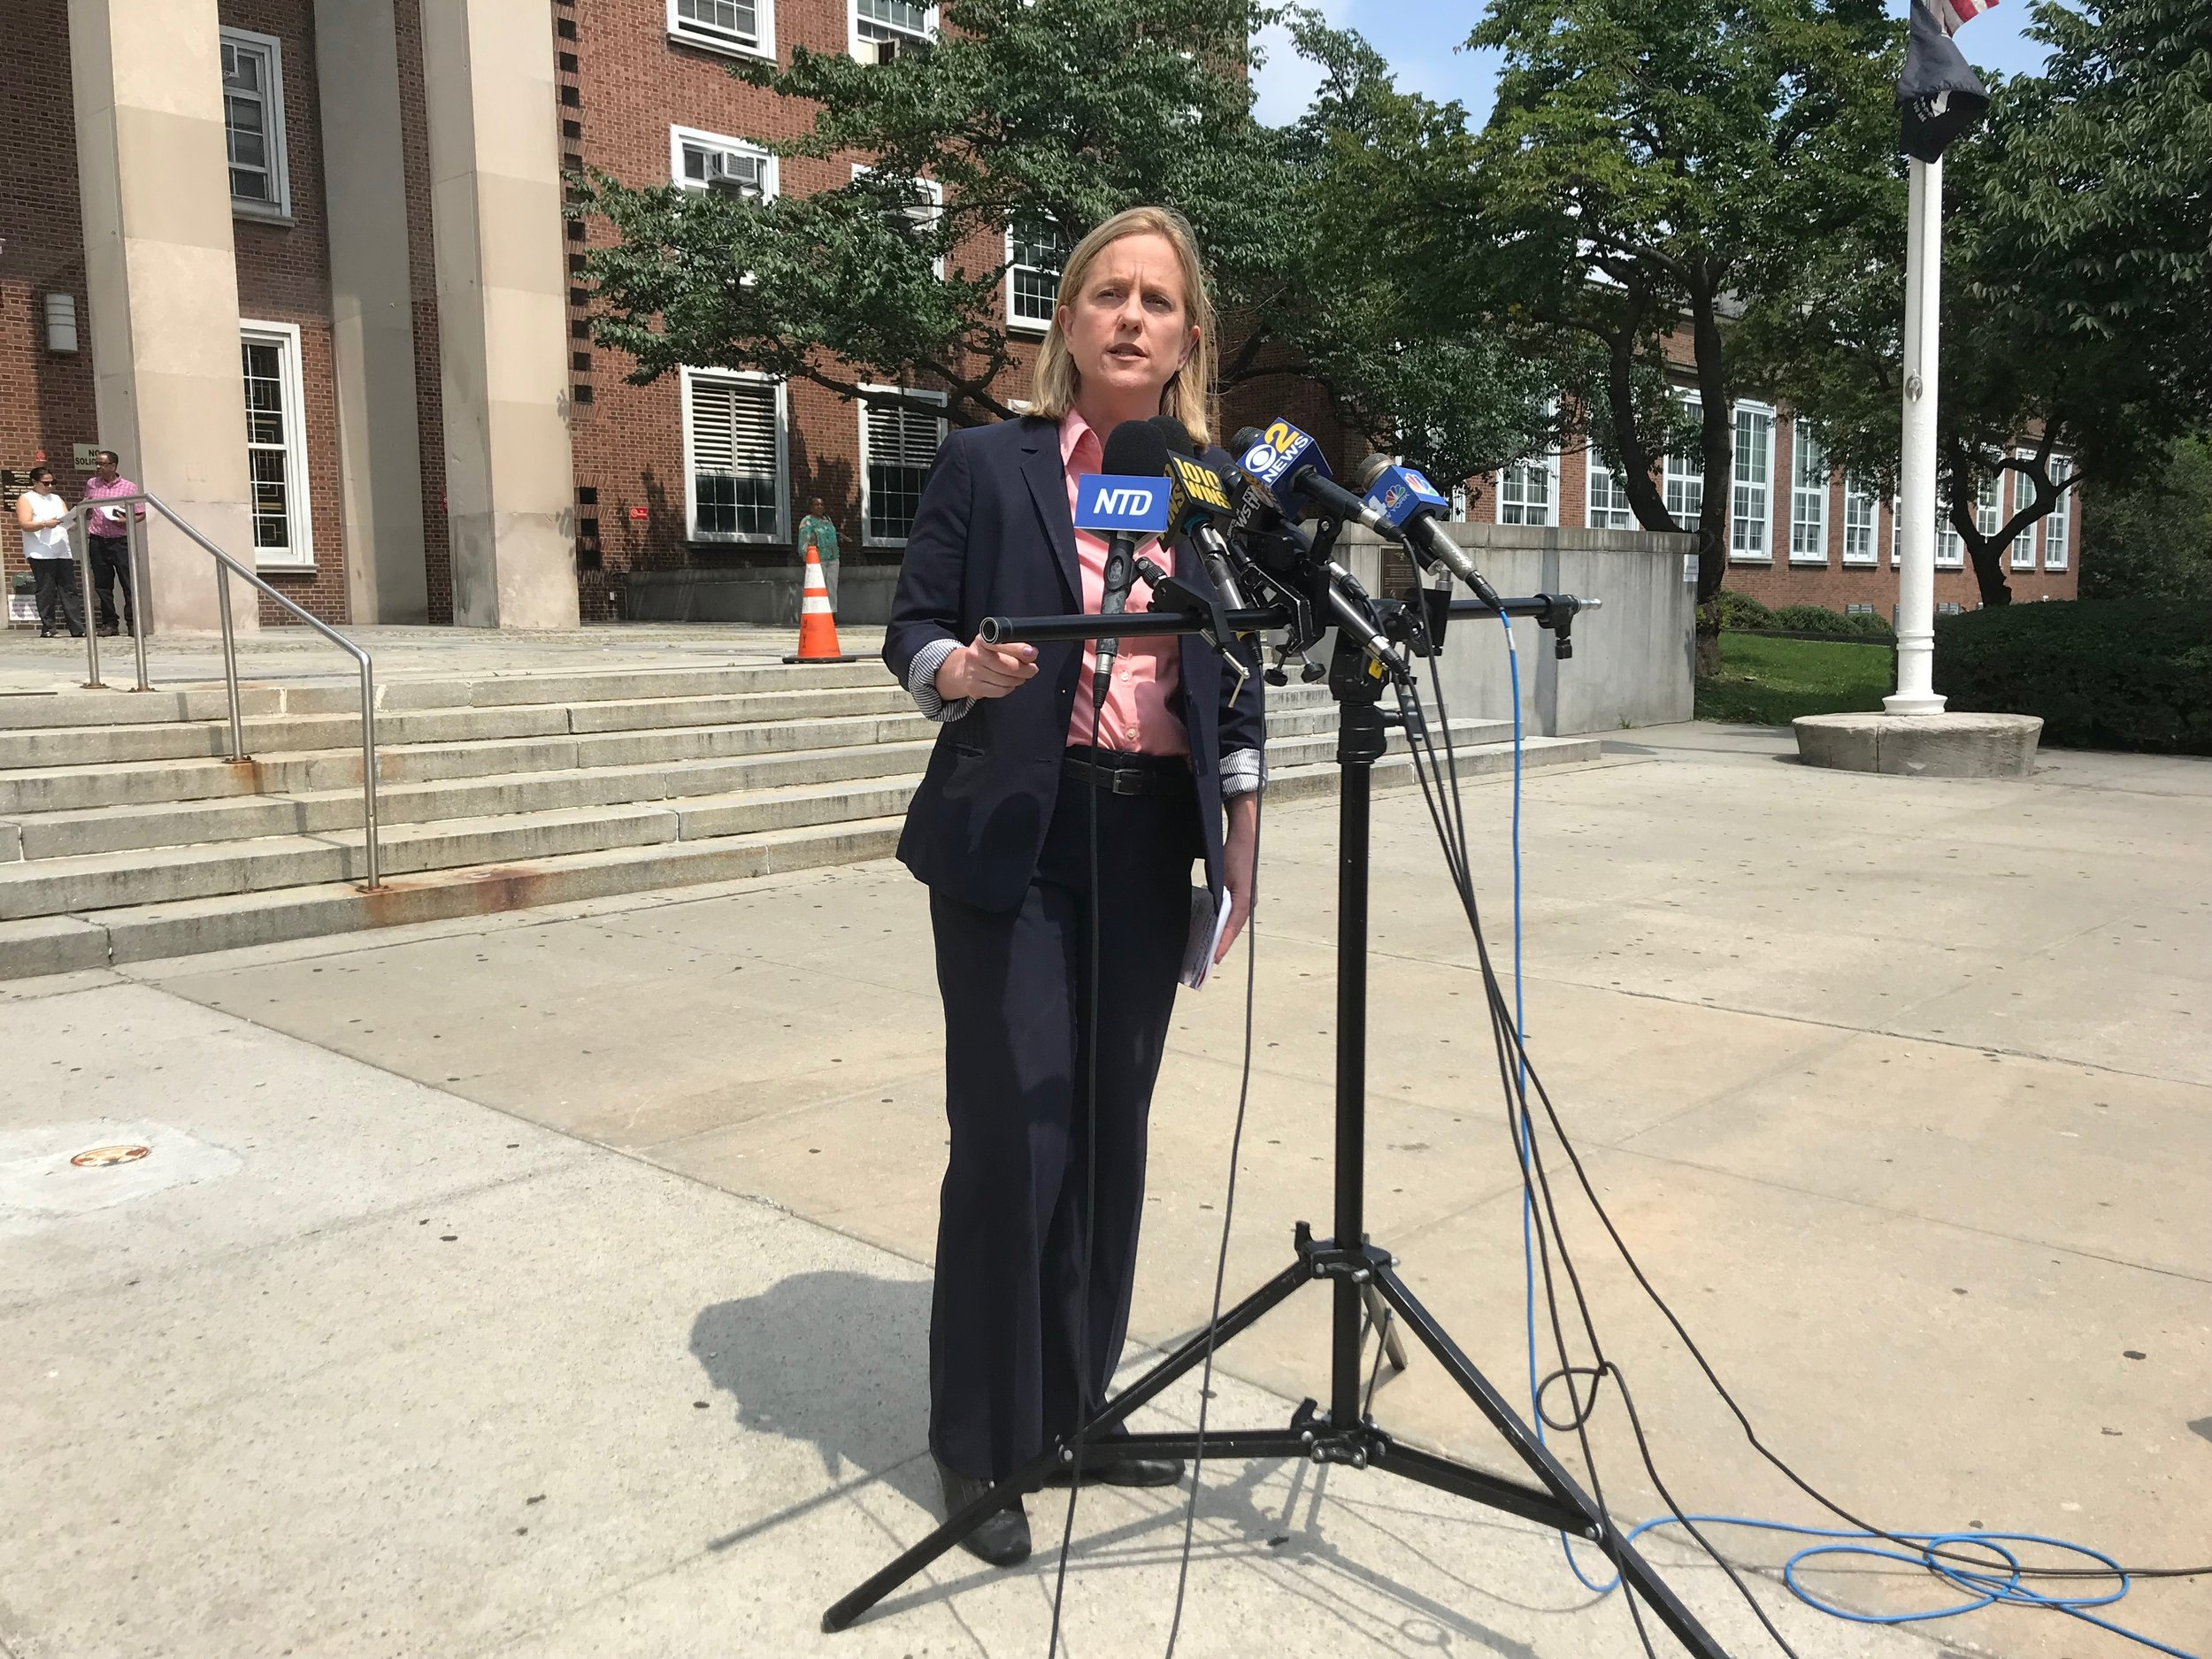 Borough President Melinda Katz announced her victory in the Democratic primary for Queens District Attorney in front of Queens Borough Hall Wednesday, hours after public defender Tiffany Cabán conceded.  Eagle  photo by Jonathan Sperling.